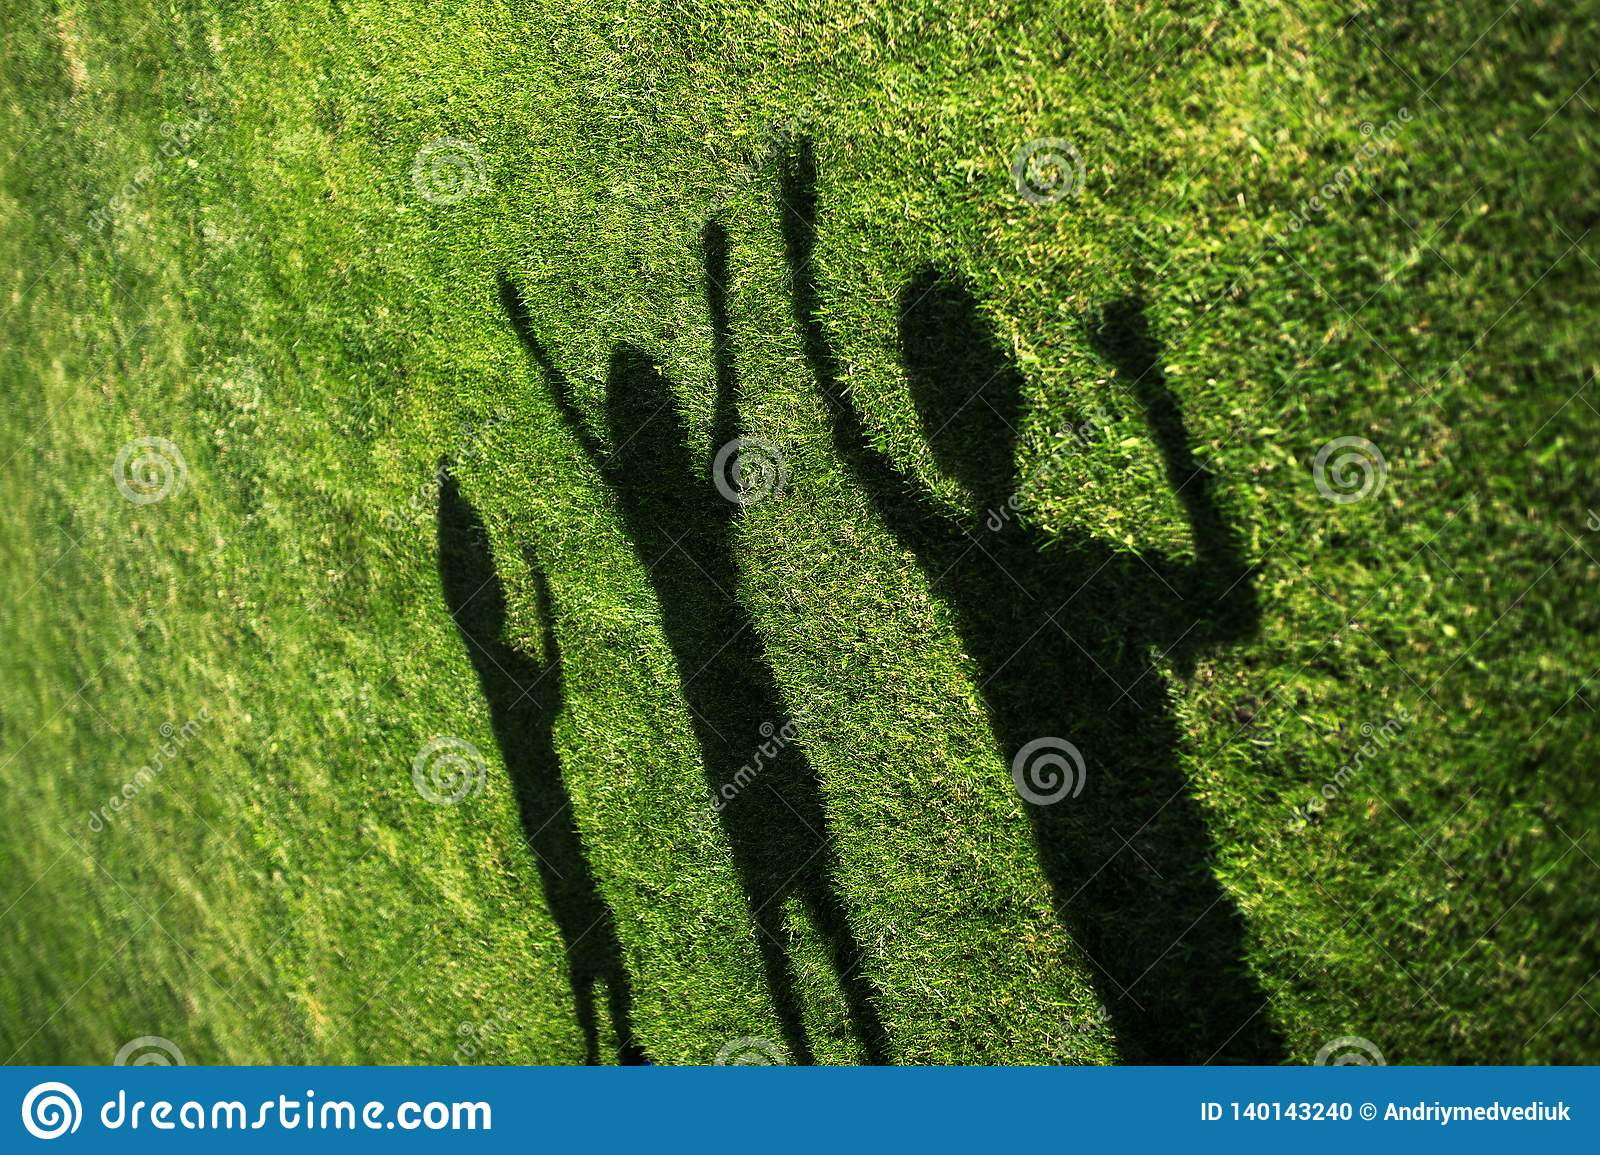 Spring Silhouettes And Shadows >> Kids With Their Shadows On Grass Silhouettes Of Three Persons